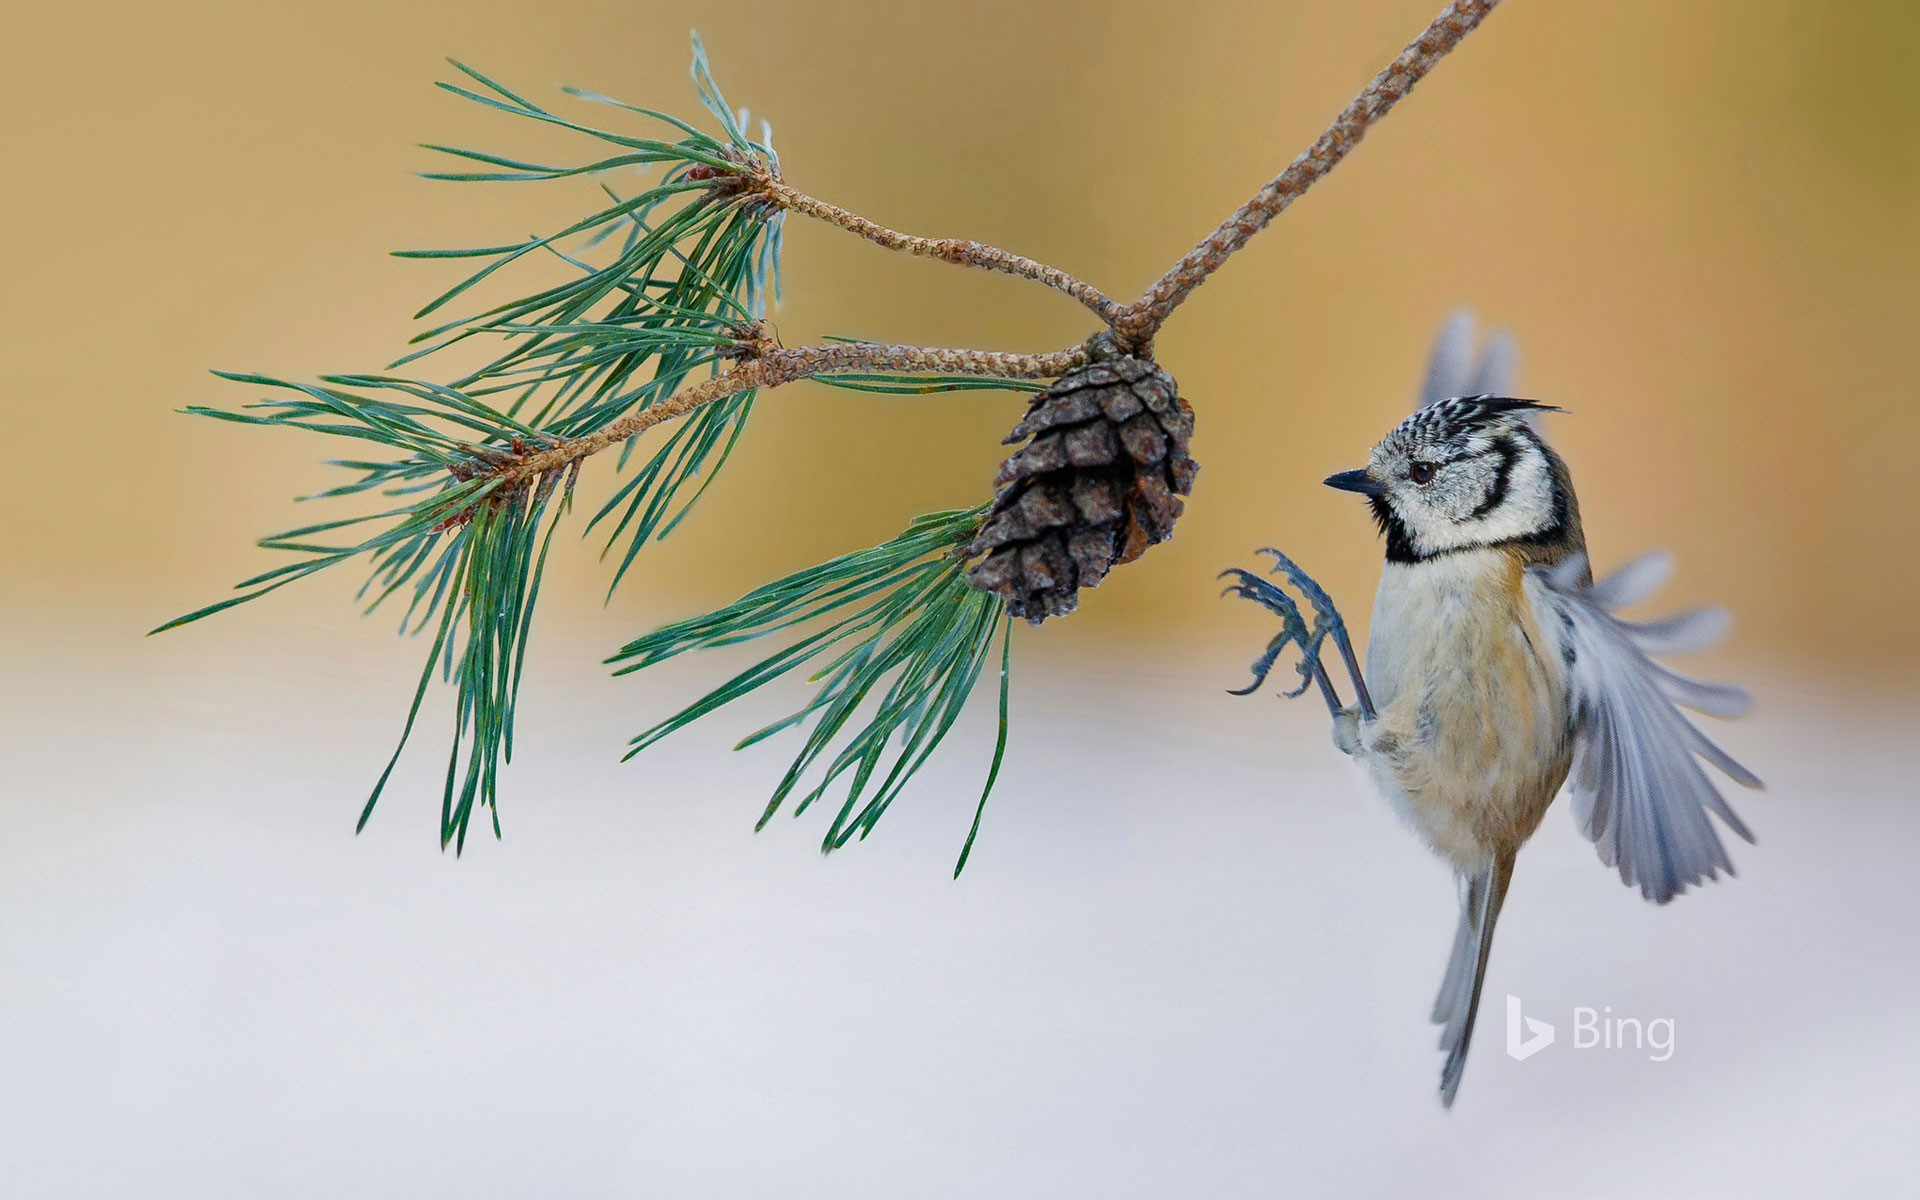 A European crested tit lands on a pine tree in France